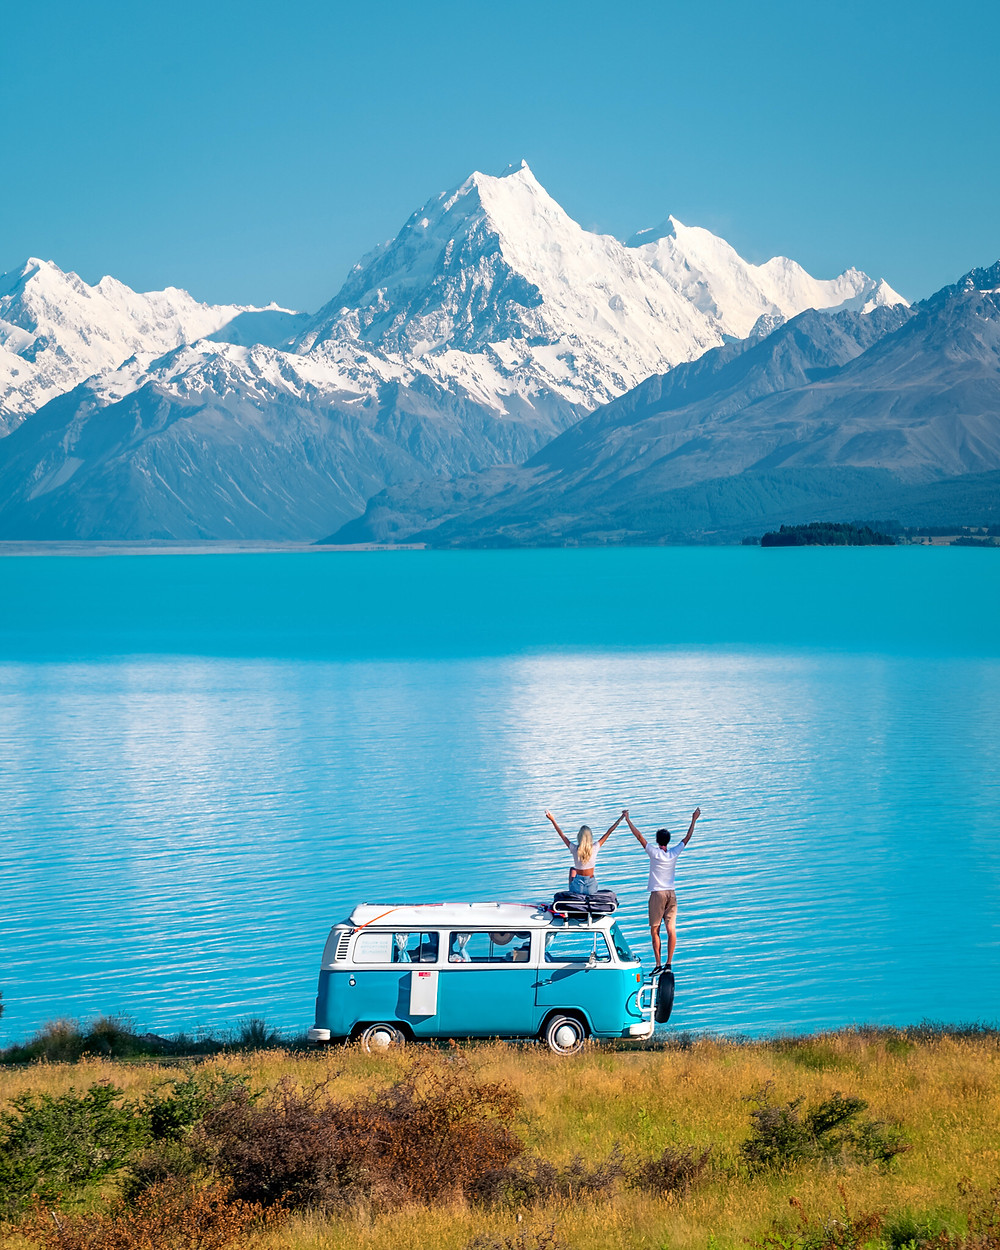 Lake Pukaki Kombi Van Volkswagen Aoraki Mount Cook Photography CJMaddock Away with CJ Charlotte Maddock James Maddock